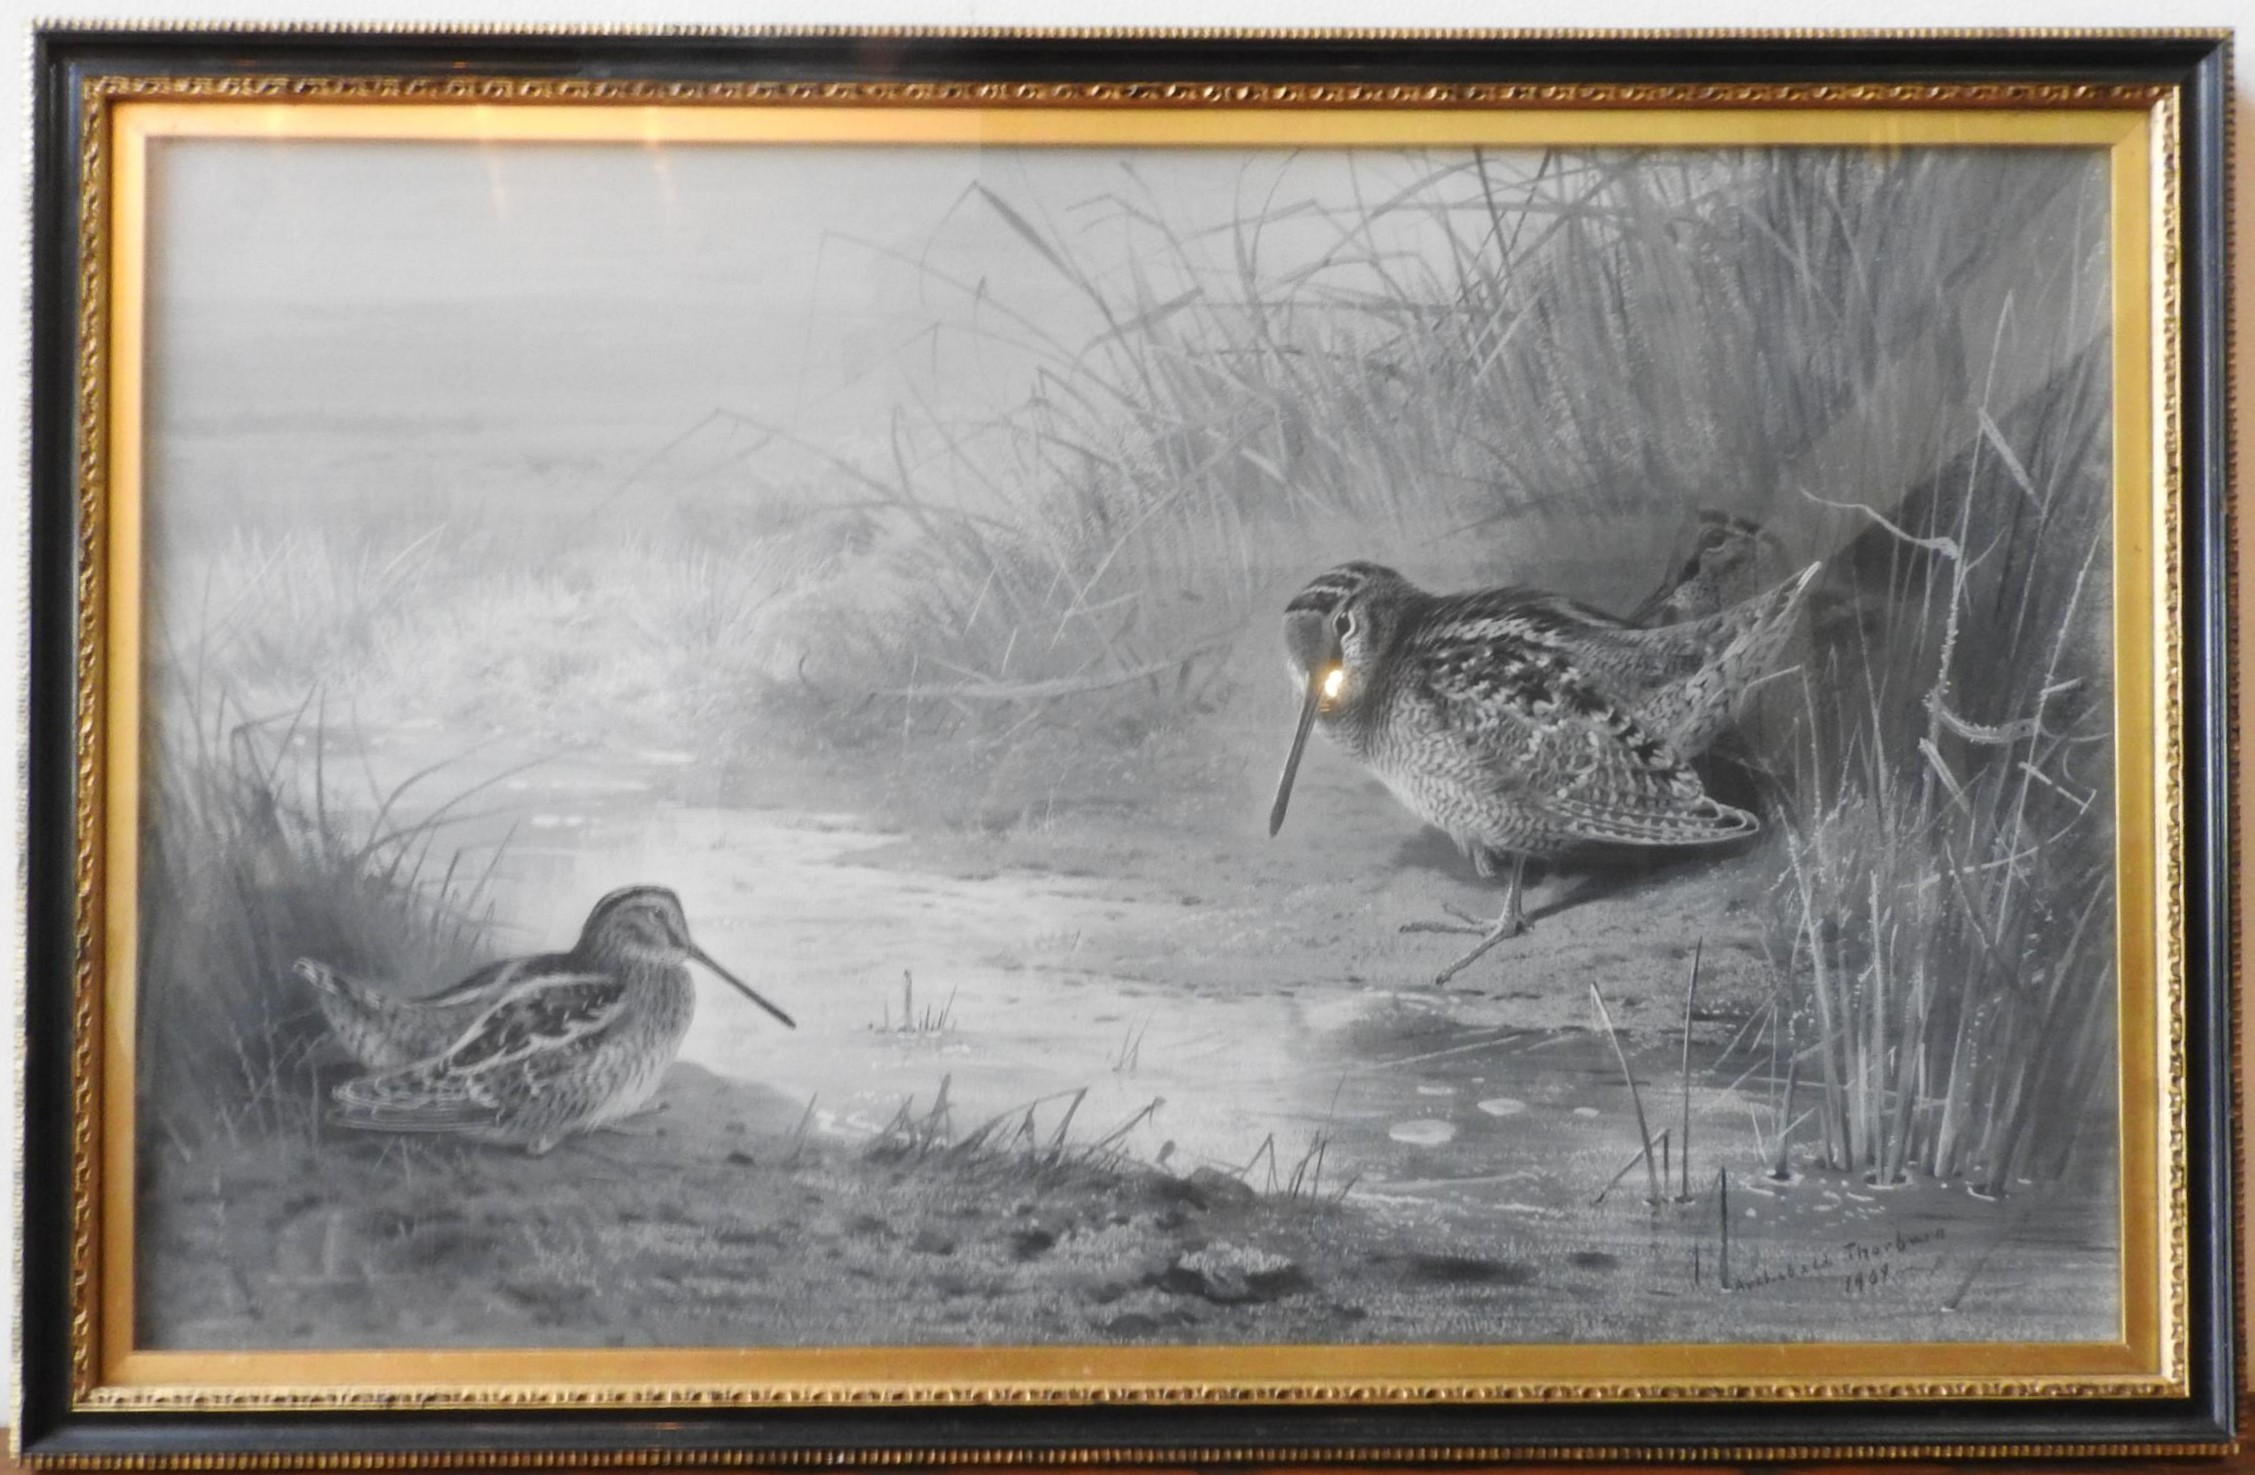 ARCHIBALD THORBURN (1860-1935), water colour of two snipes, 1909, 42 x 69 cm